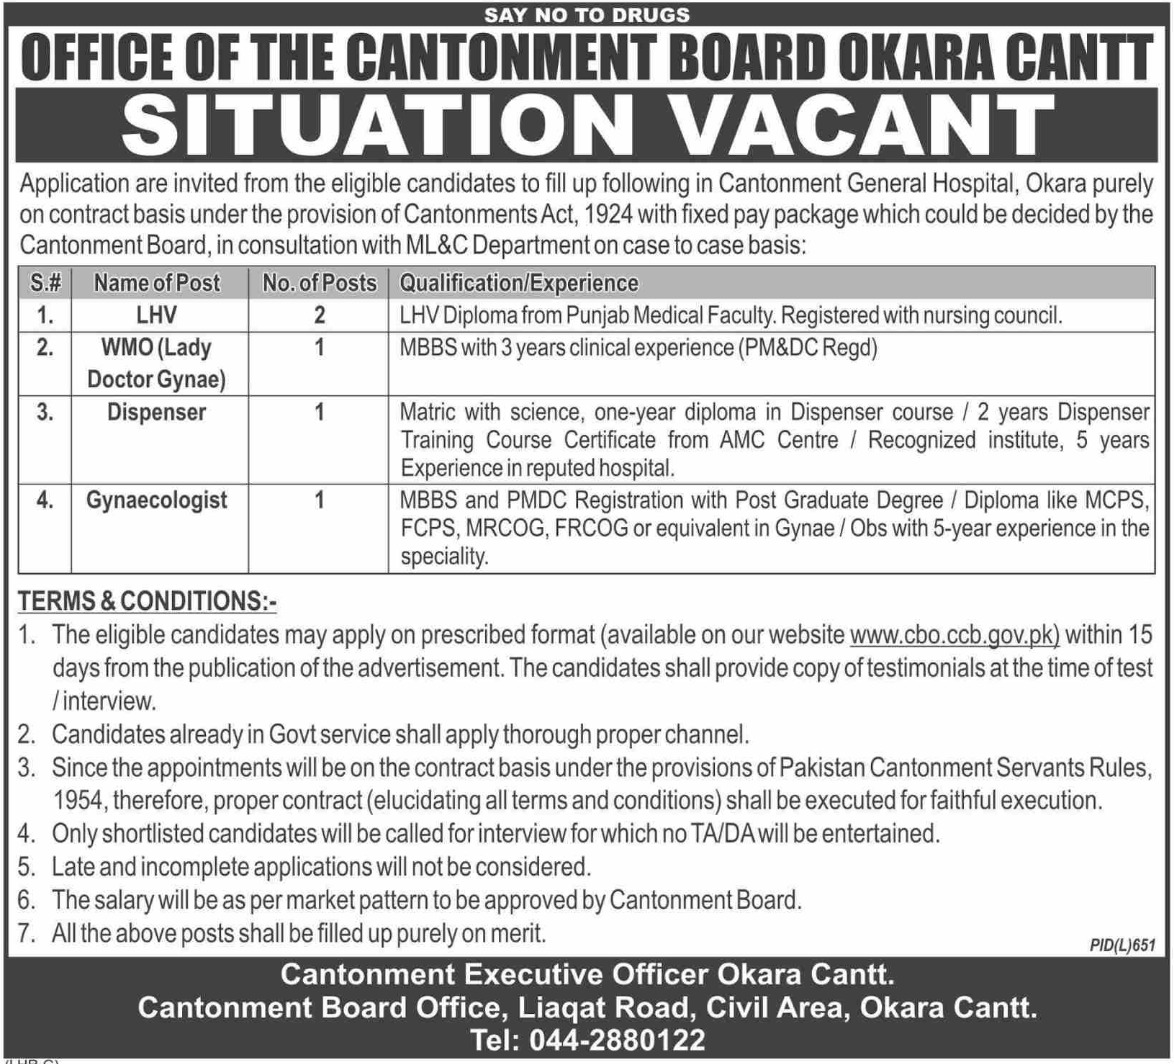 Cantonment-Board-Okara-Cantt-Jobs-2019-Application-Form Job Application Form University Of Sargodha on all department, it department, syndicate members, bba outline, red building, logo png, merit list,